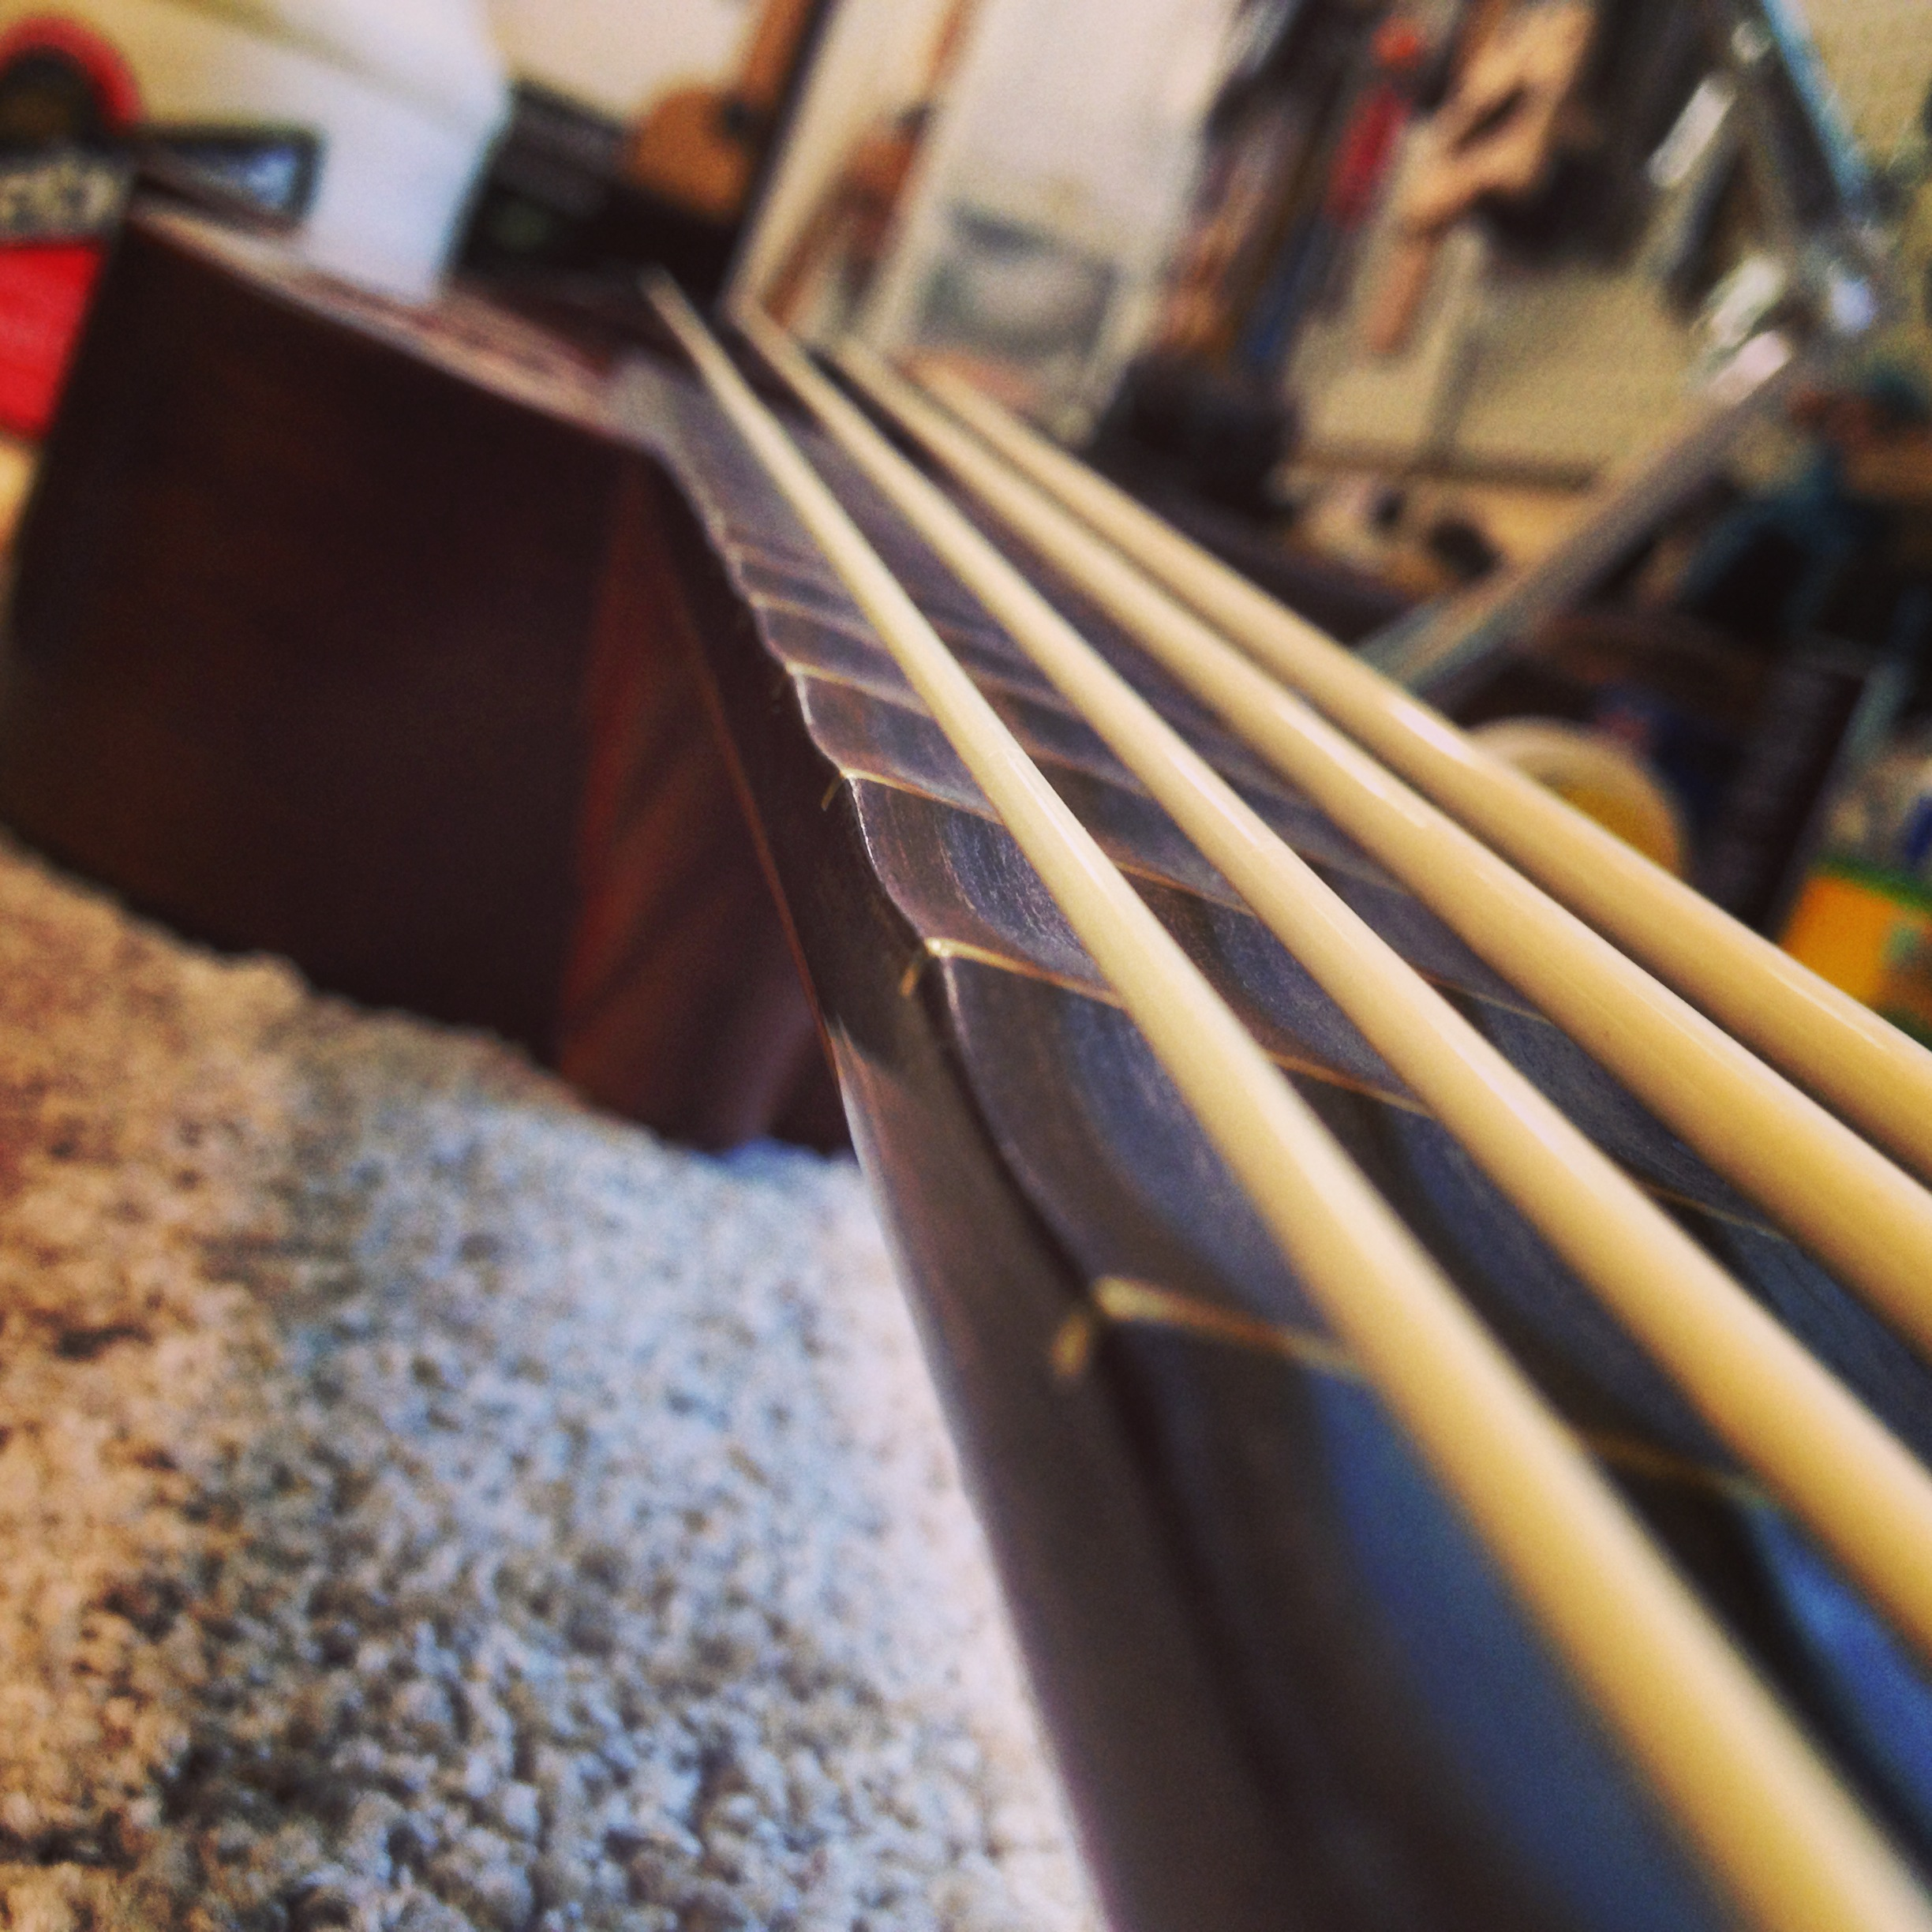 The Scalloped Fretboard keeps this Oceana Bass playing silky smooth.